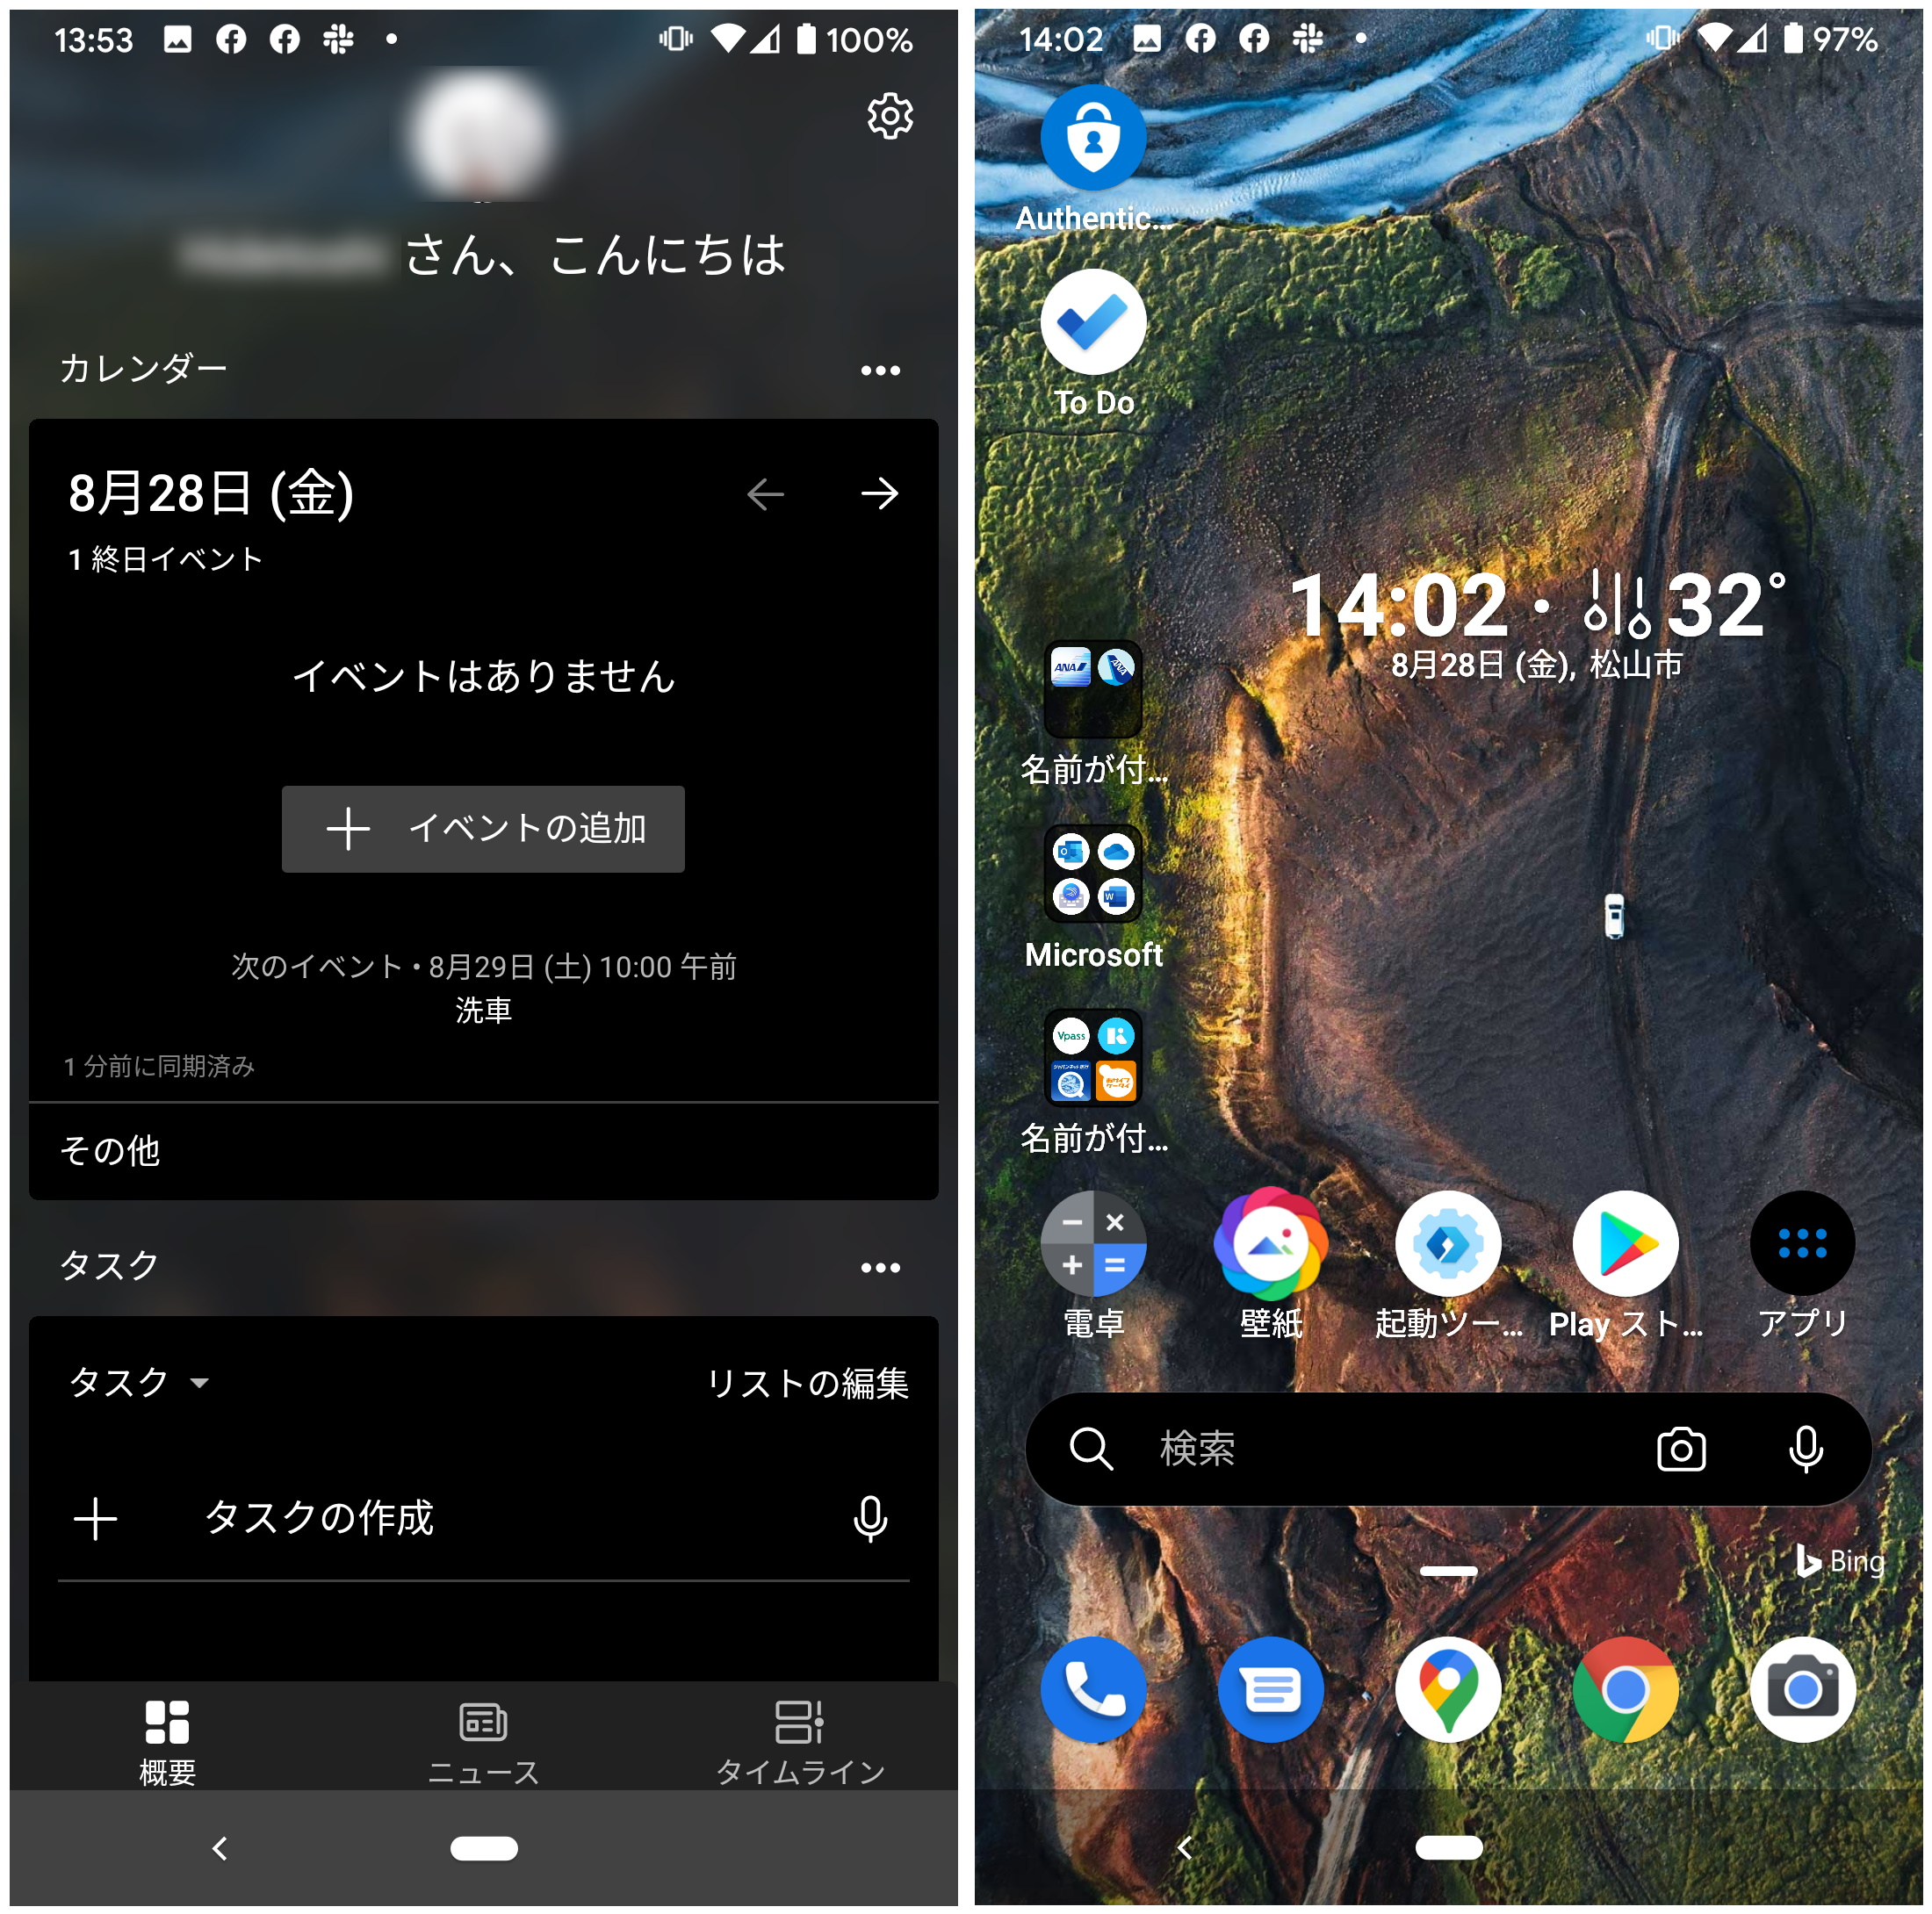 Android向けホーム画面アプリ Microsoft Launcher 6 2 が配信開始 窓の杜